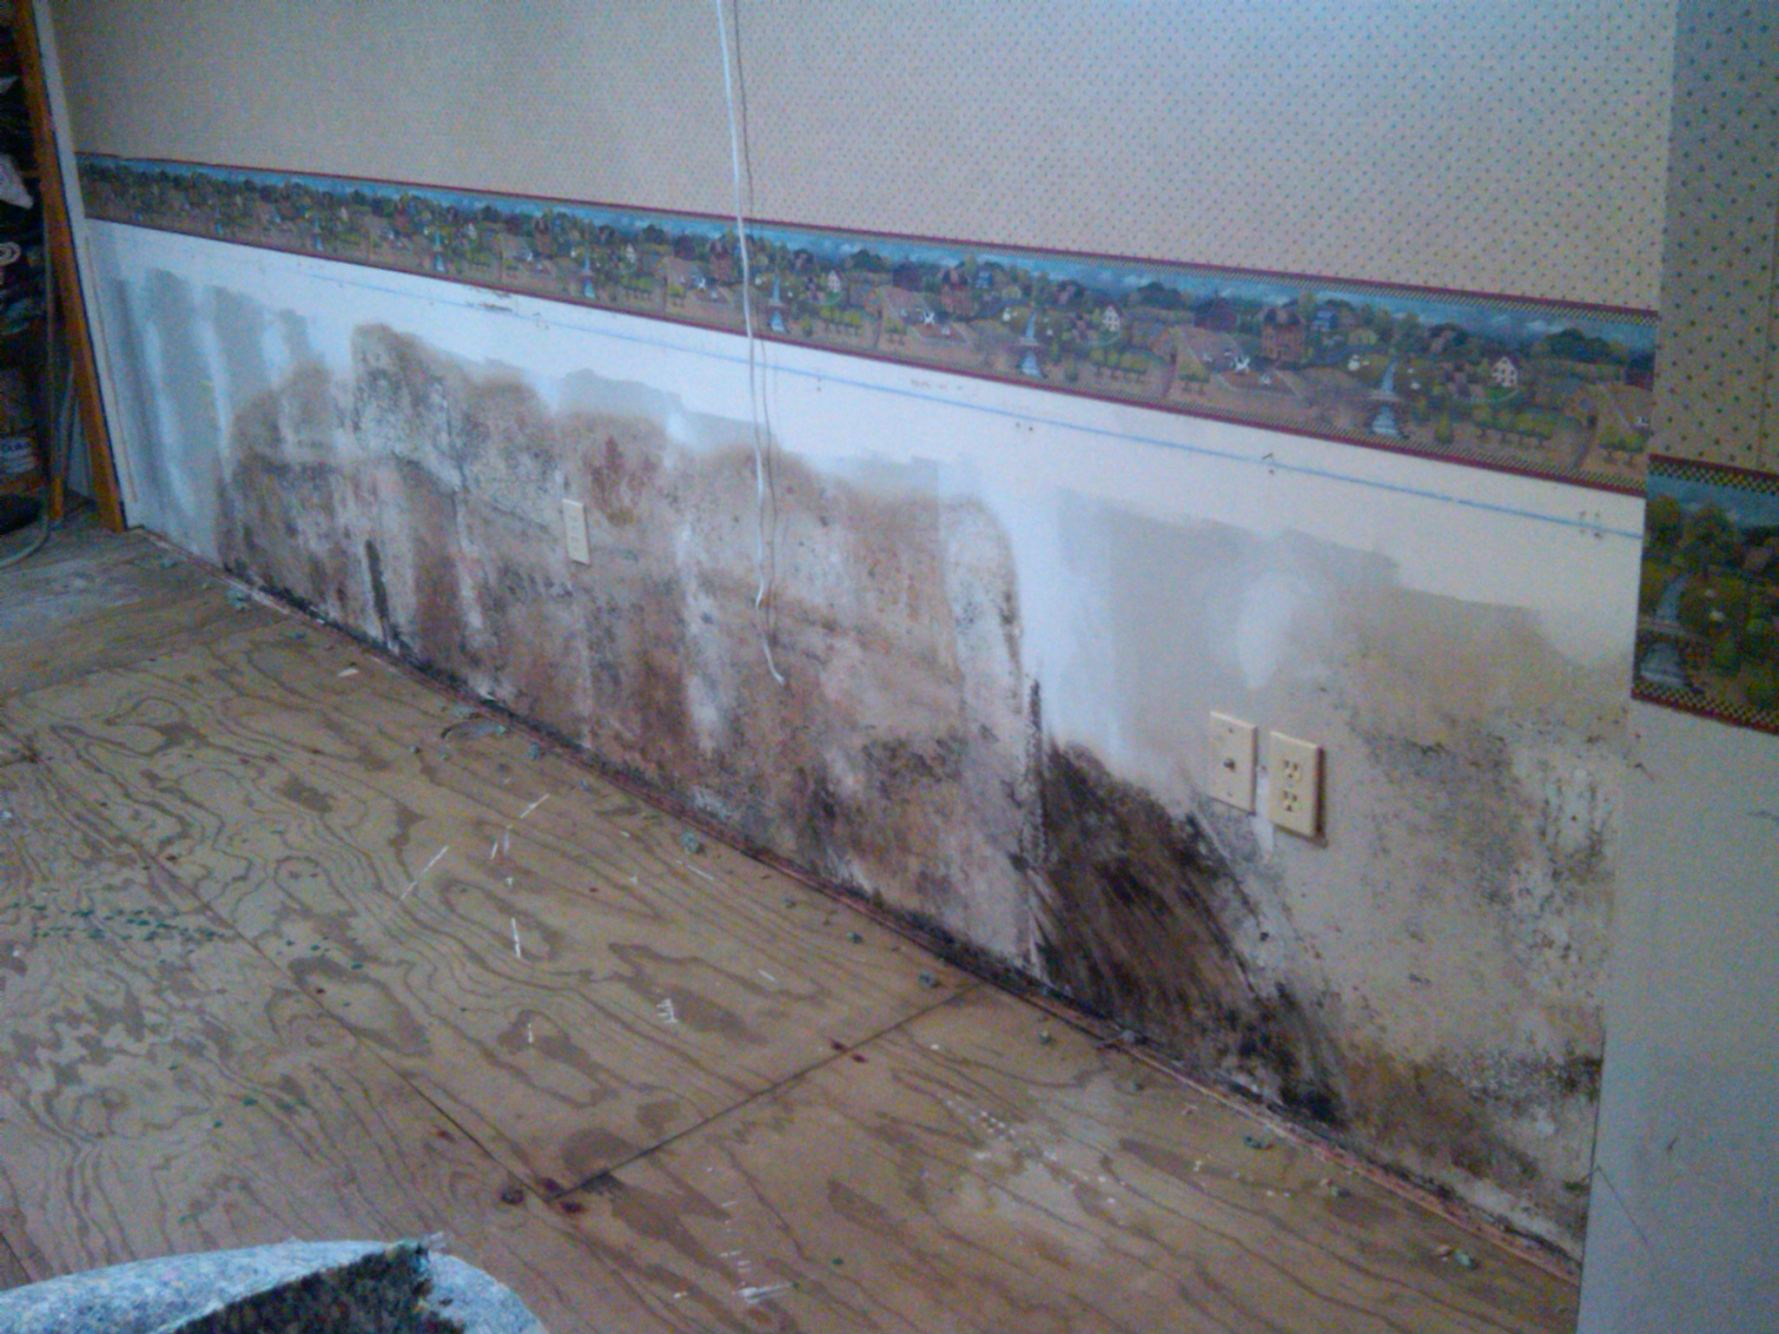 basement mold from flooding